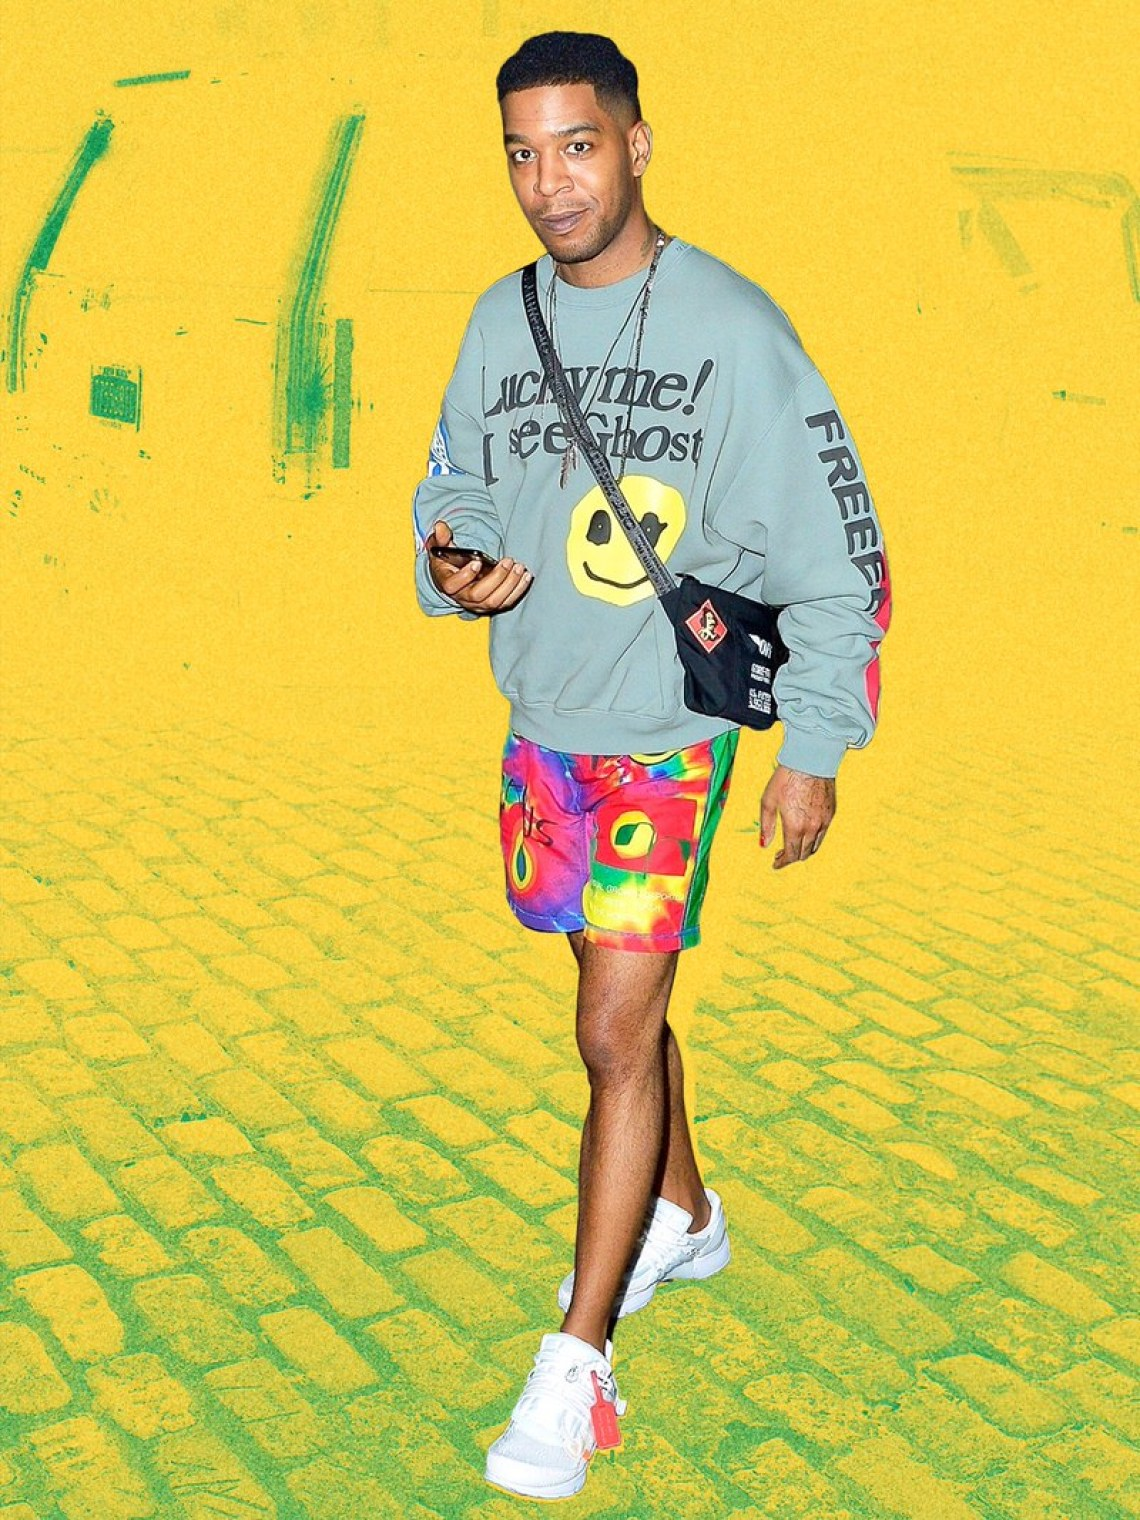 Kid Cudi on his way to the Kids See Ghosts SNL performance wearing Cactus Plant Flea Market merch.